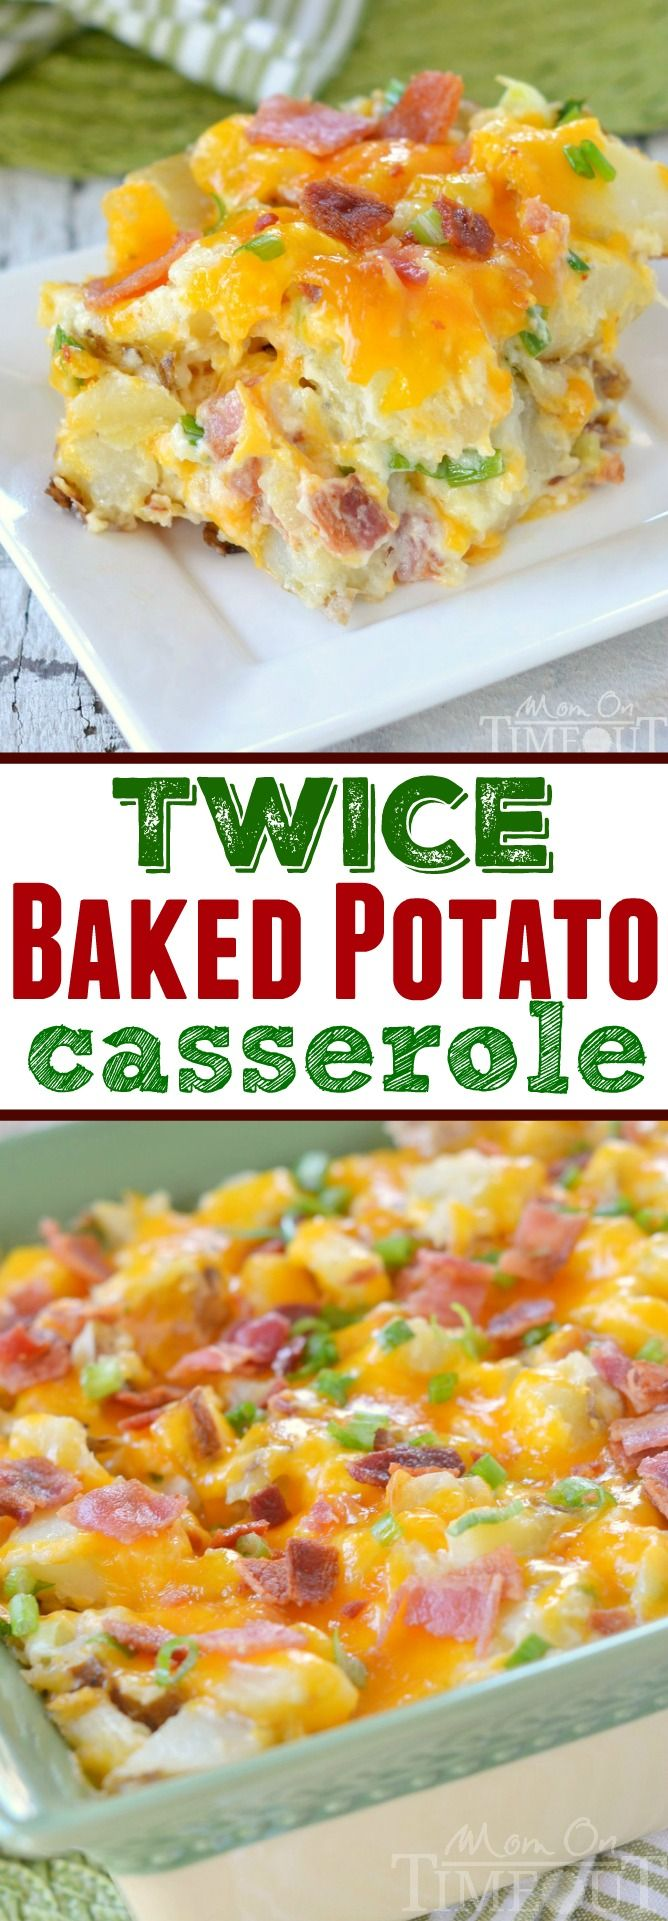 There's nothing more comforting than twice baked potatoes - unless you turn them into a casserole! This Twice Baked Potato Casserole has all your favorite flavors from a twice baked potato but in a deliciously fabulous casserole form - yum! // Mom On Timeout